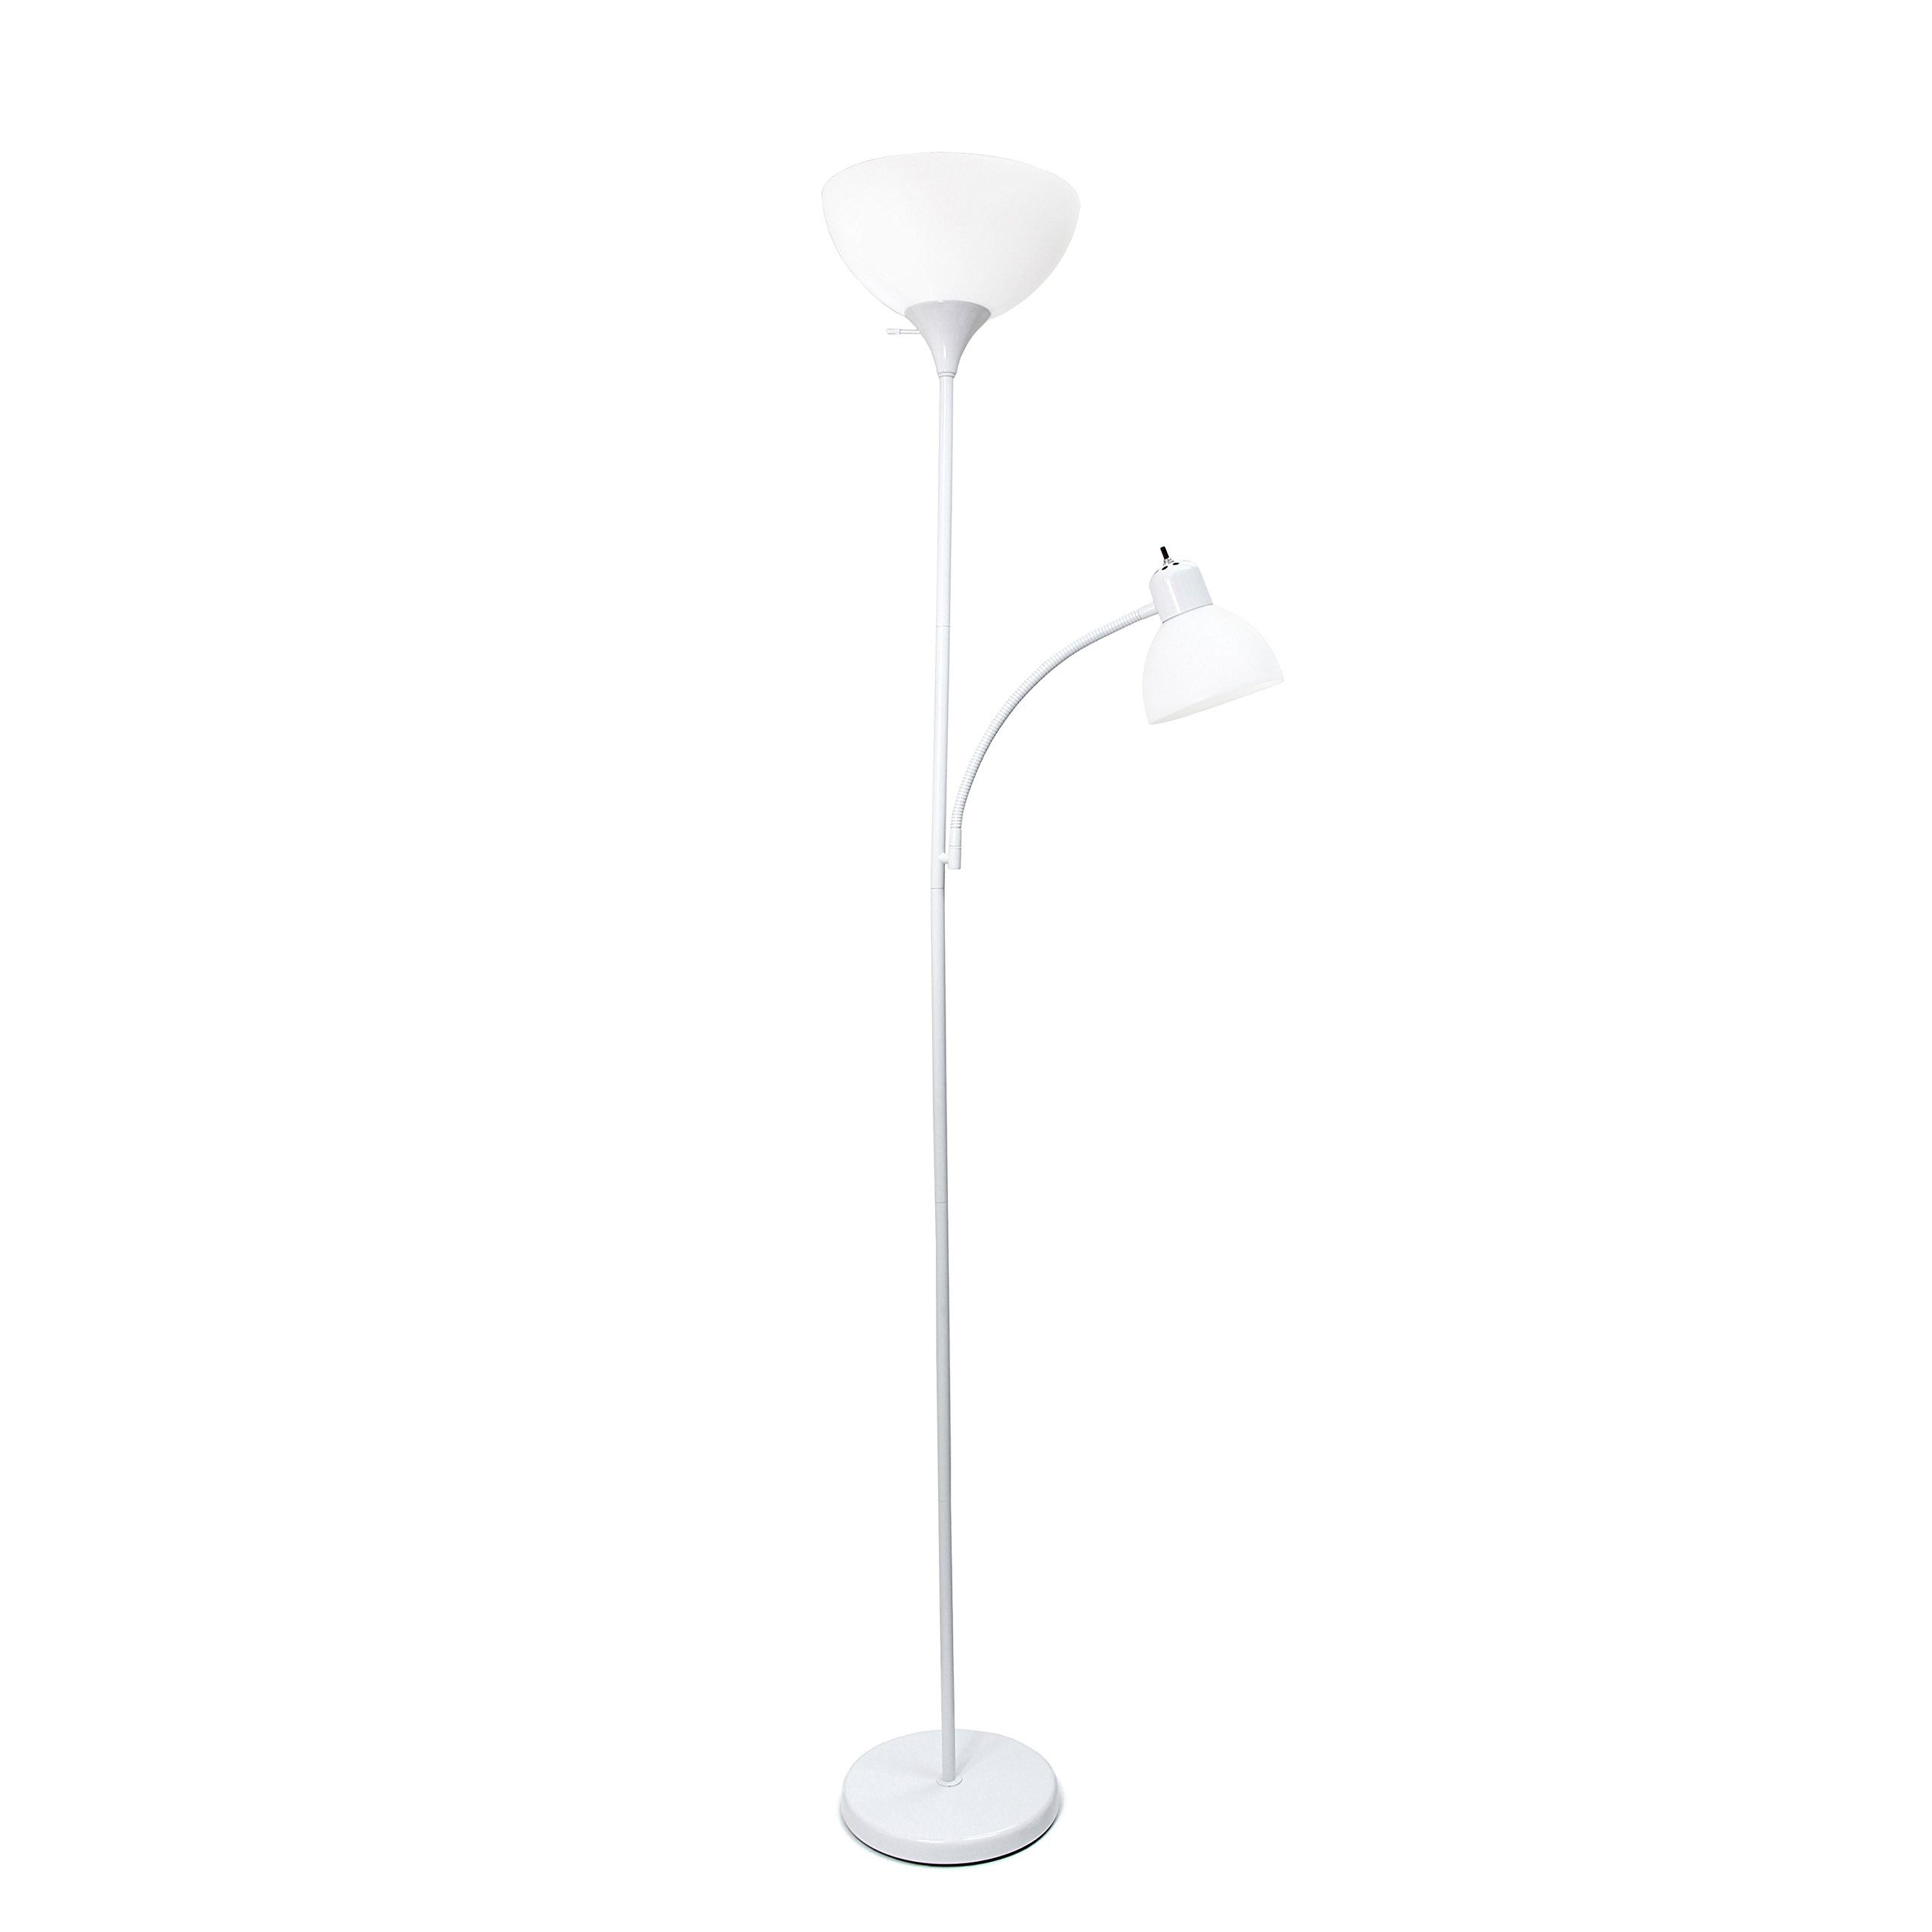 Simple Designs Home LF2000-WHT Floor Lamp with with Reading Light, White